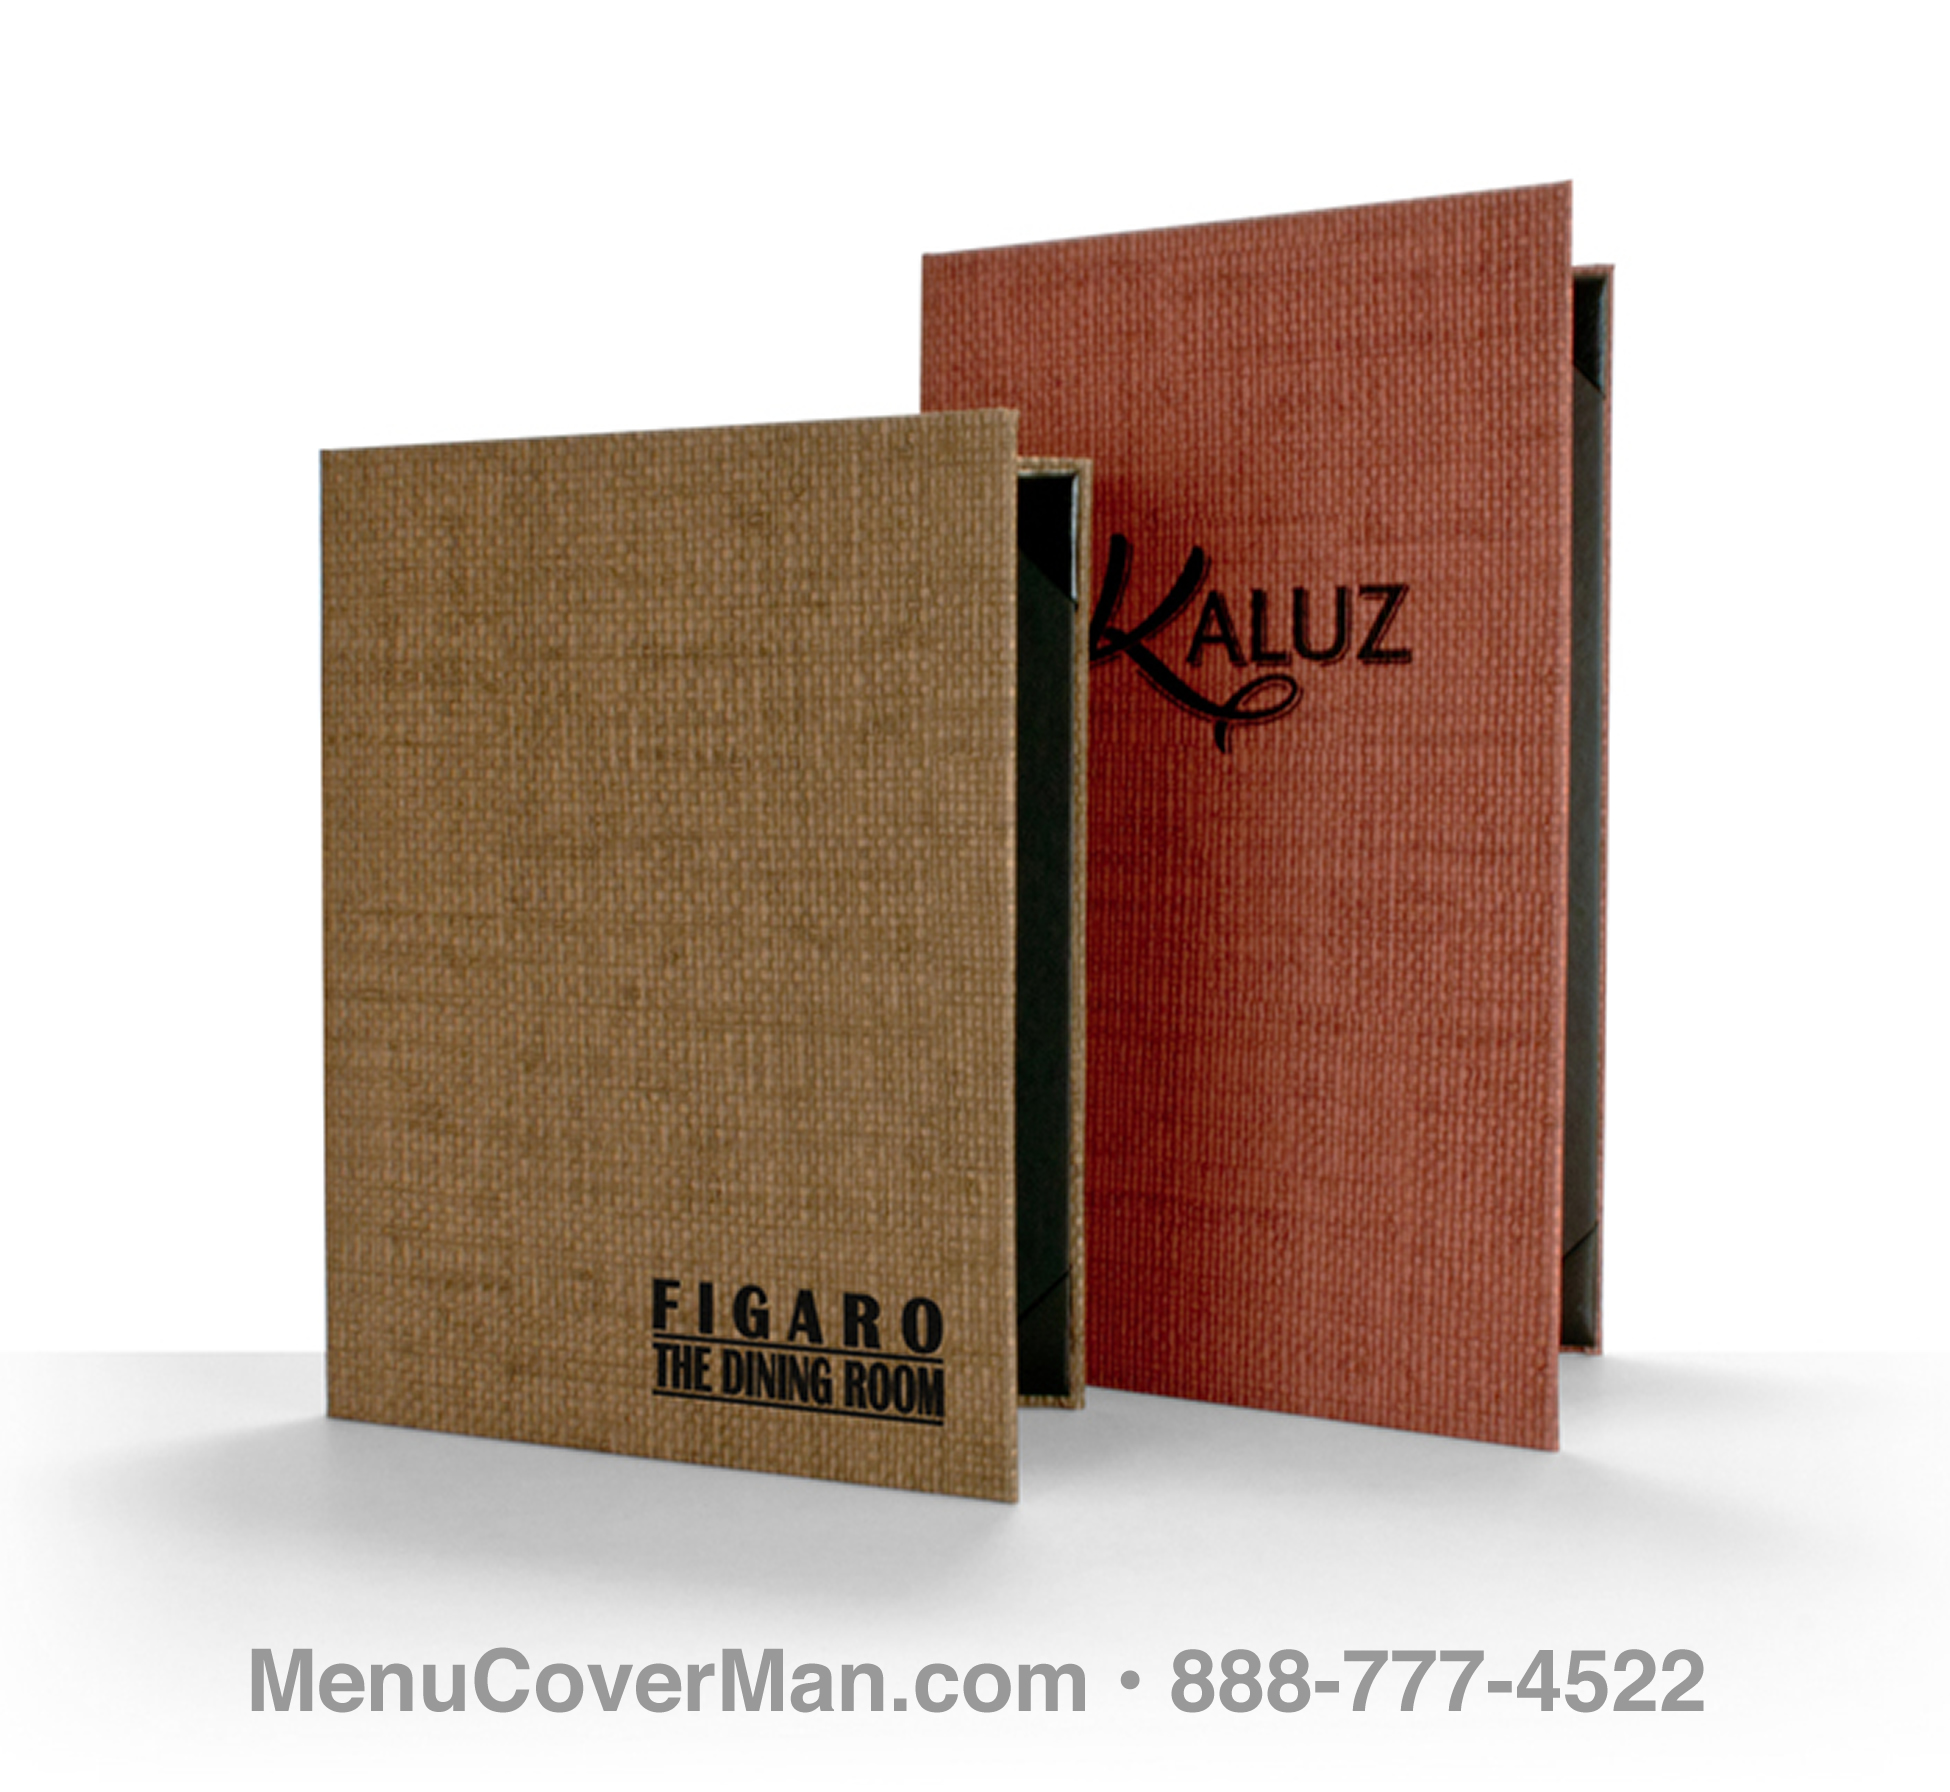 Rattan Menu Covers Frontspiece.